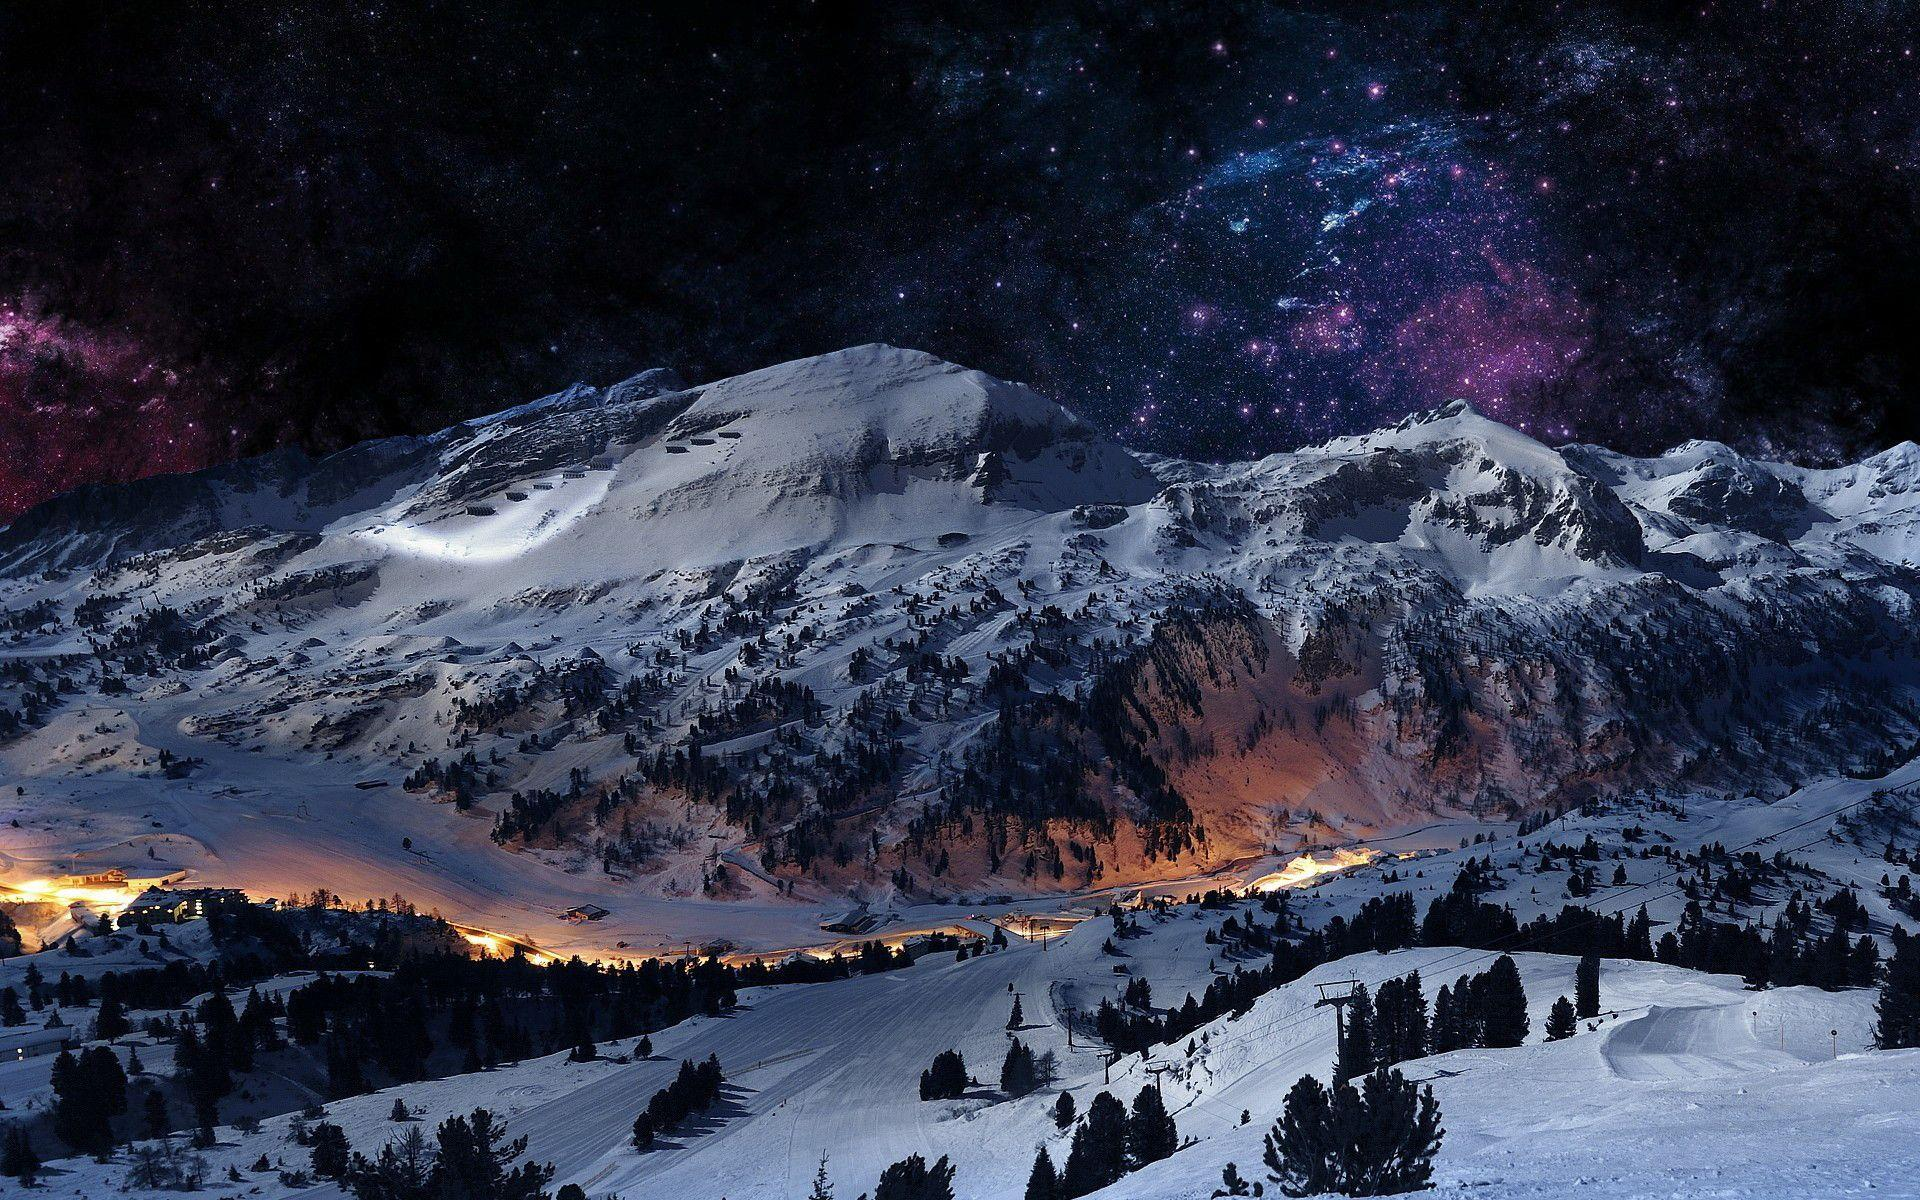 Snowy Mountain Night Wallpaper